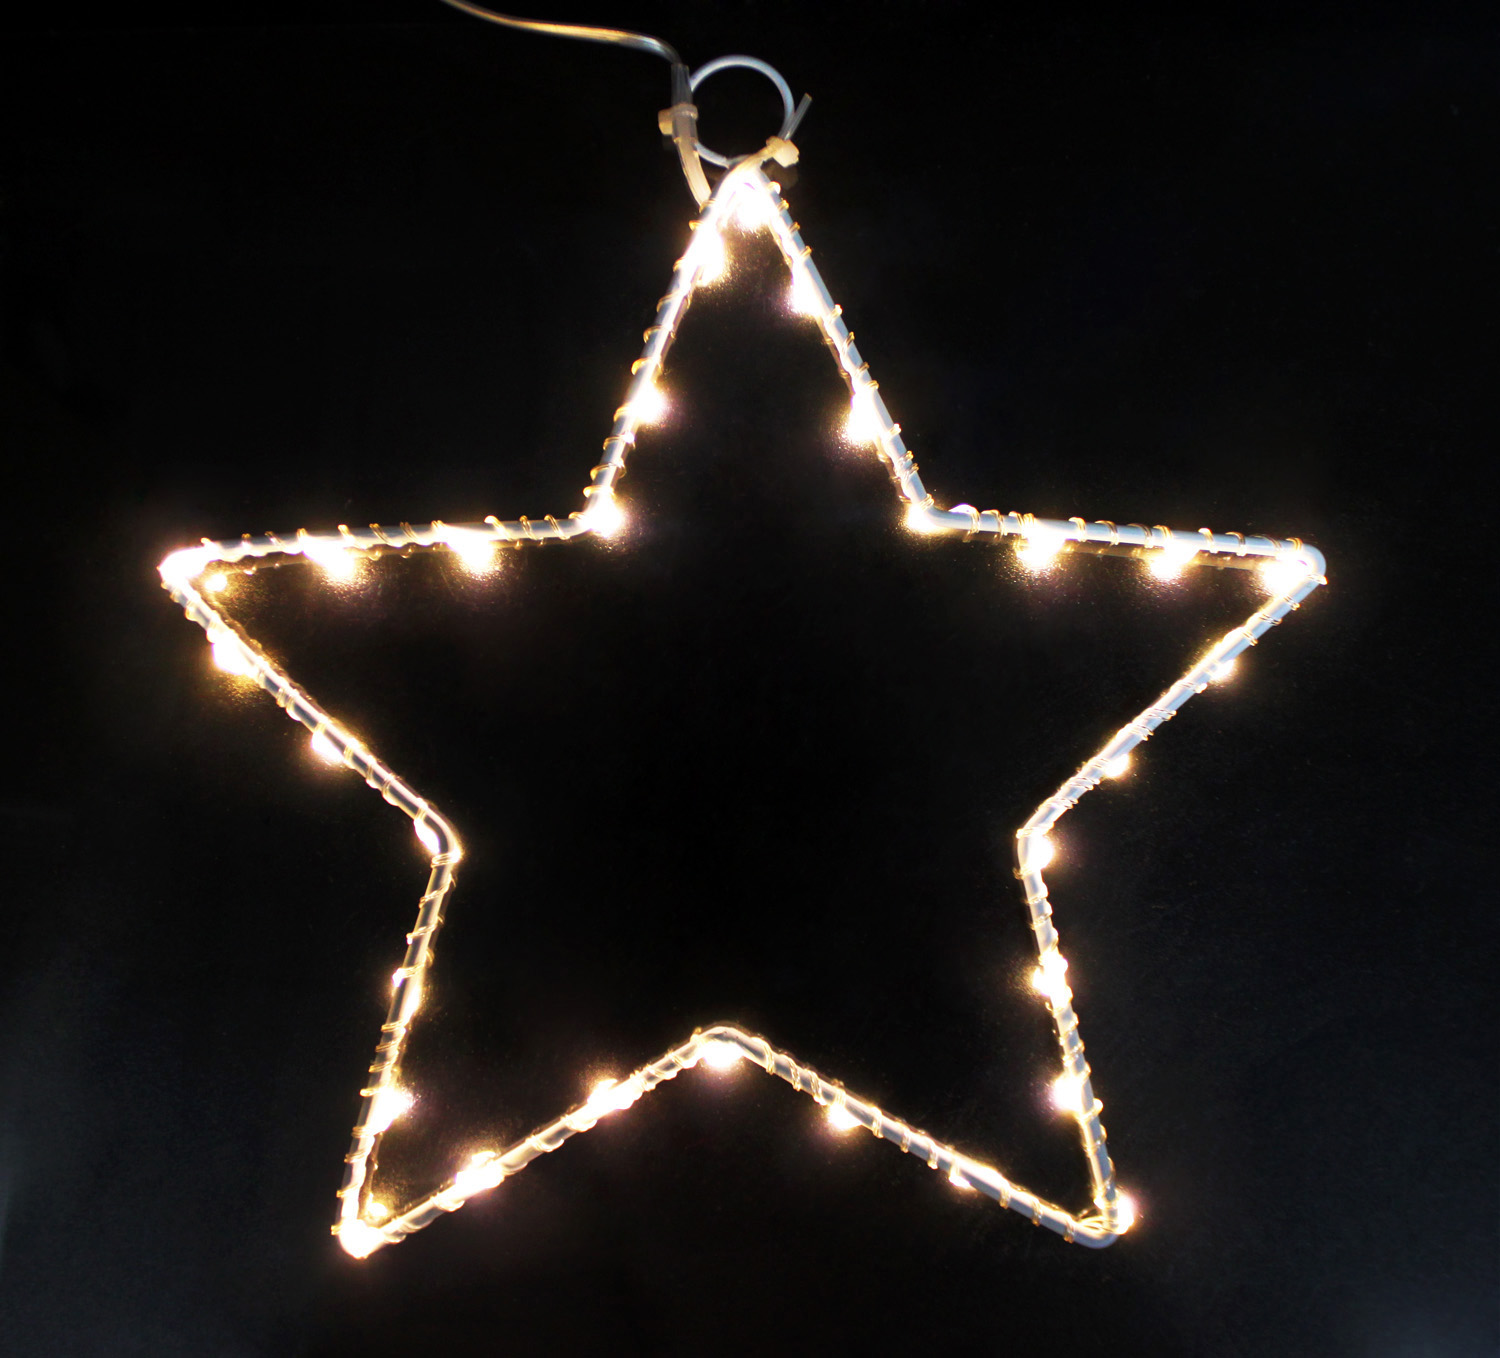 LED string light with iron star bracket